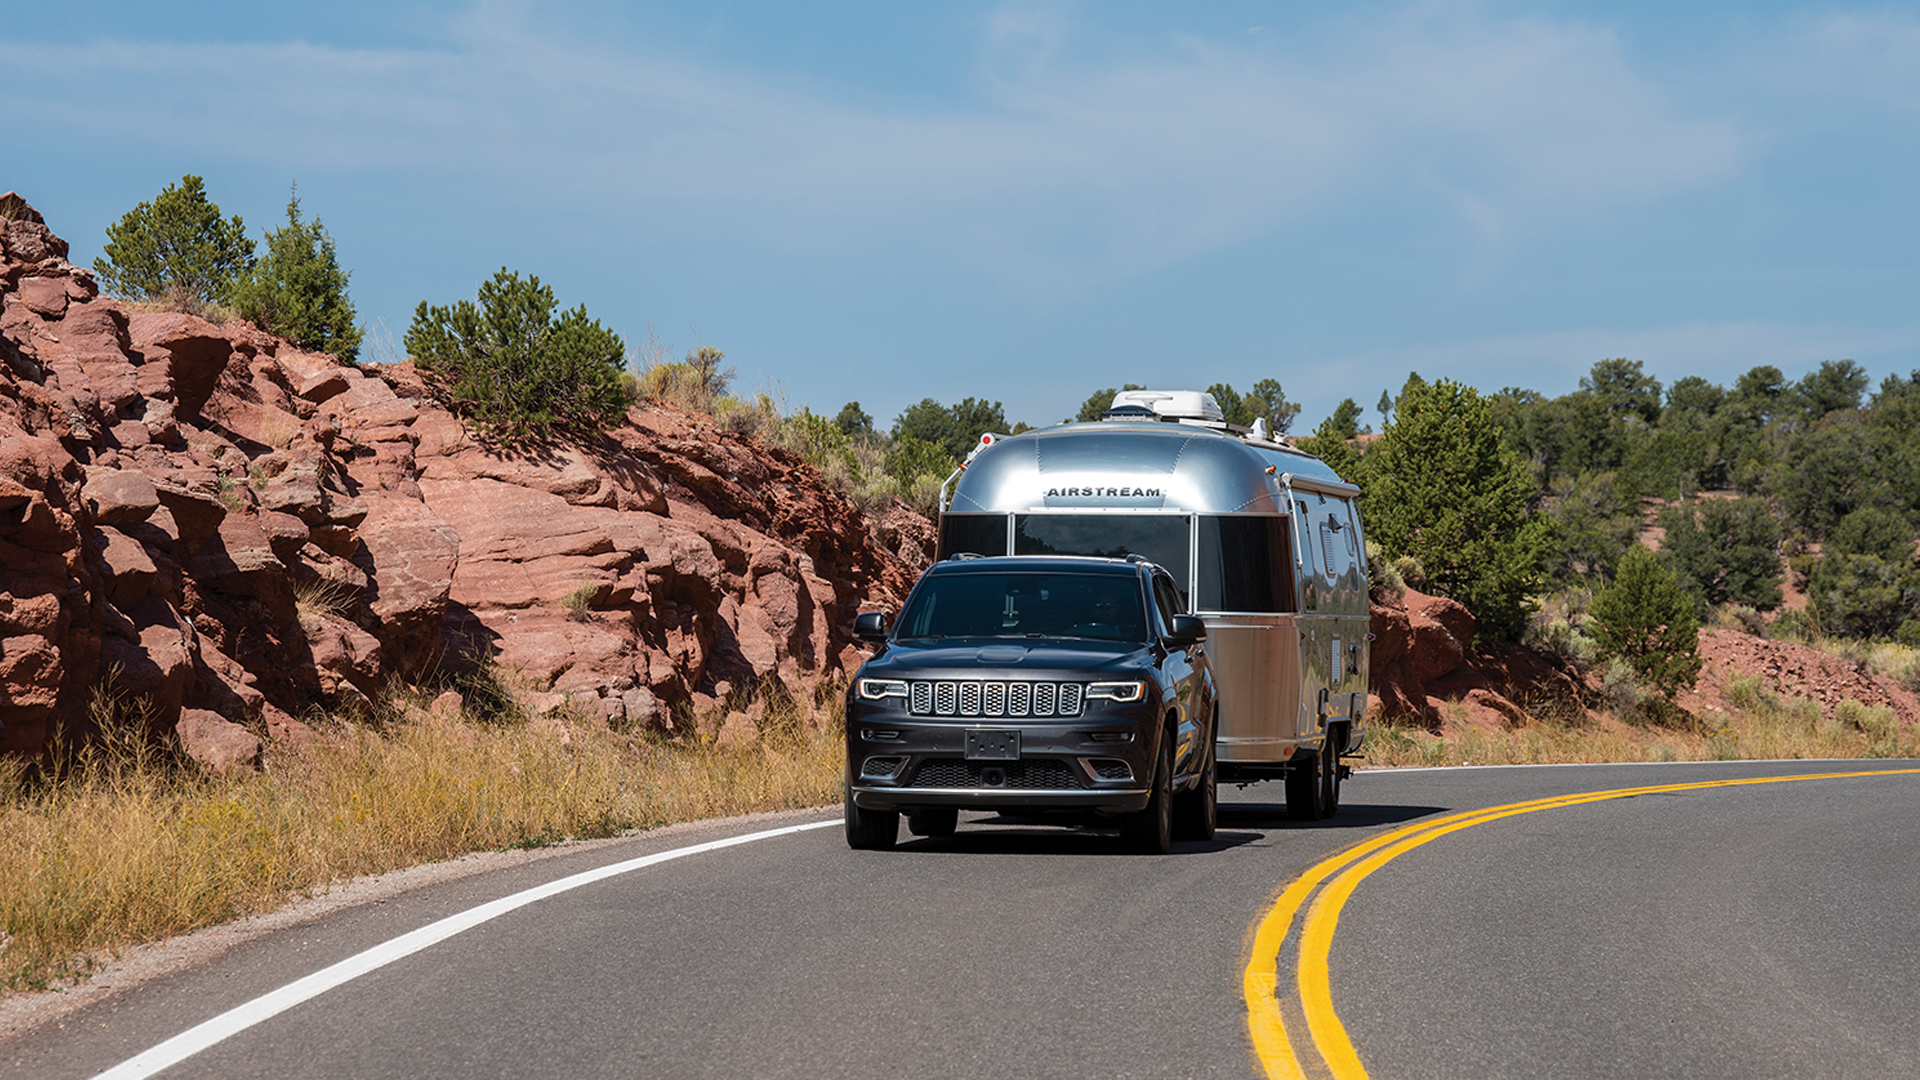 SUV-towing-an-Airstream